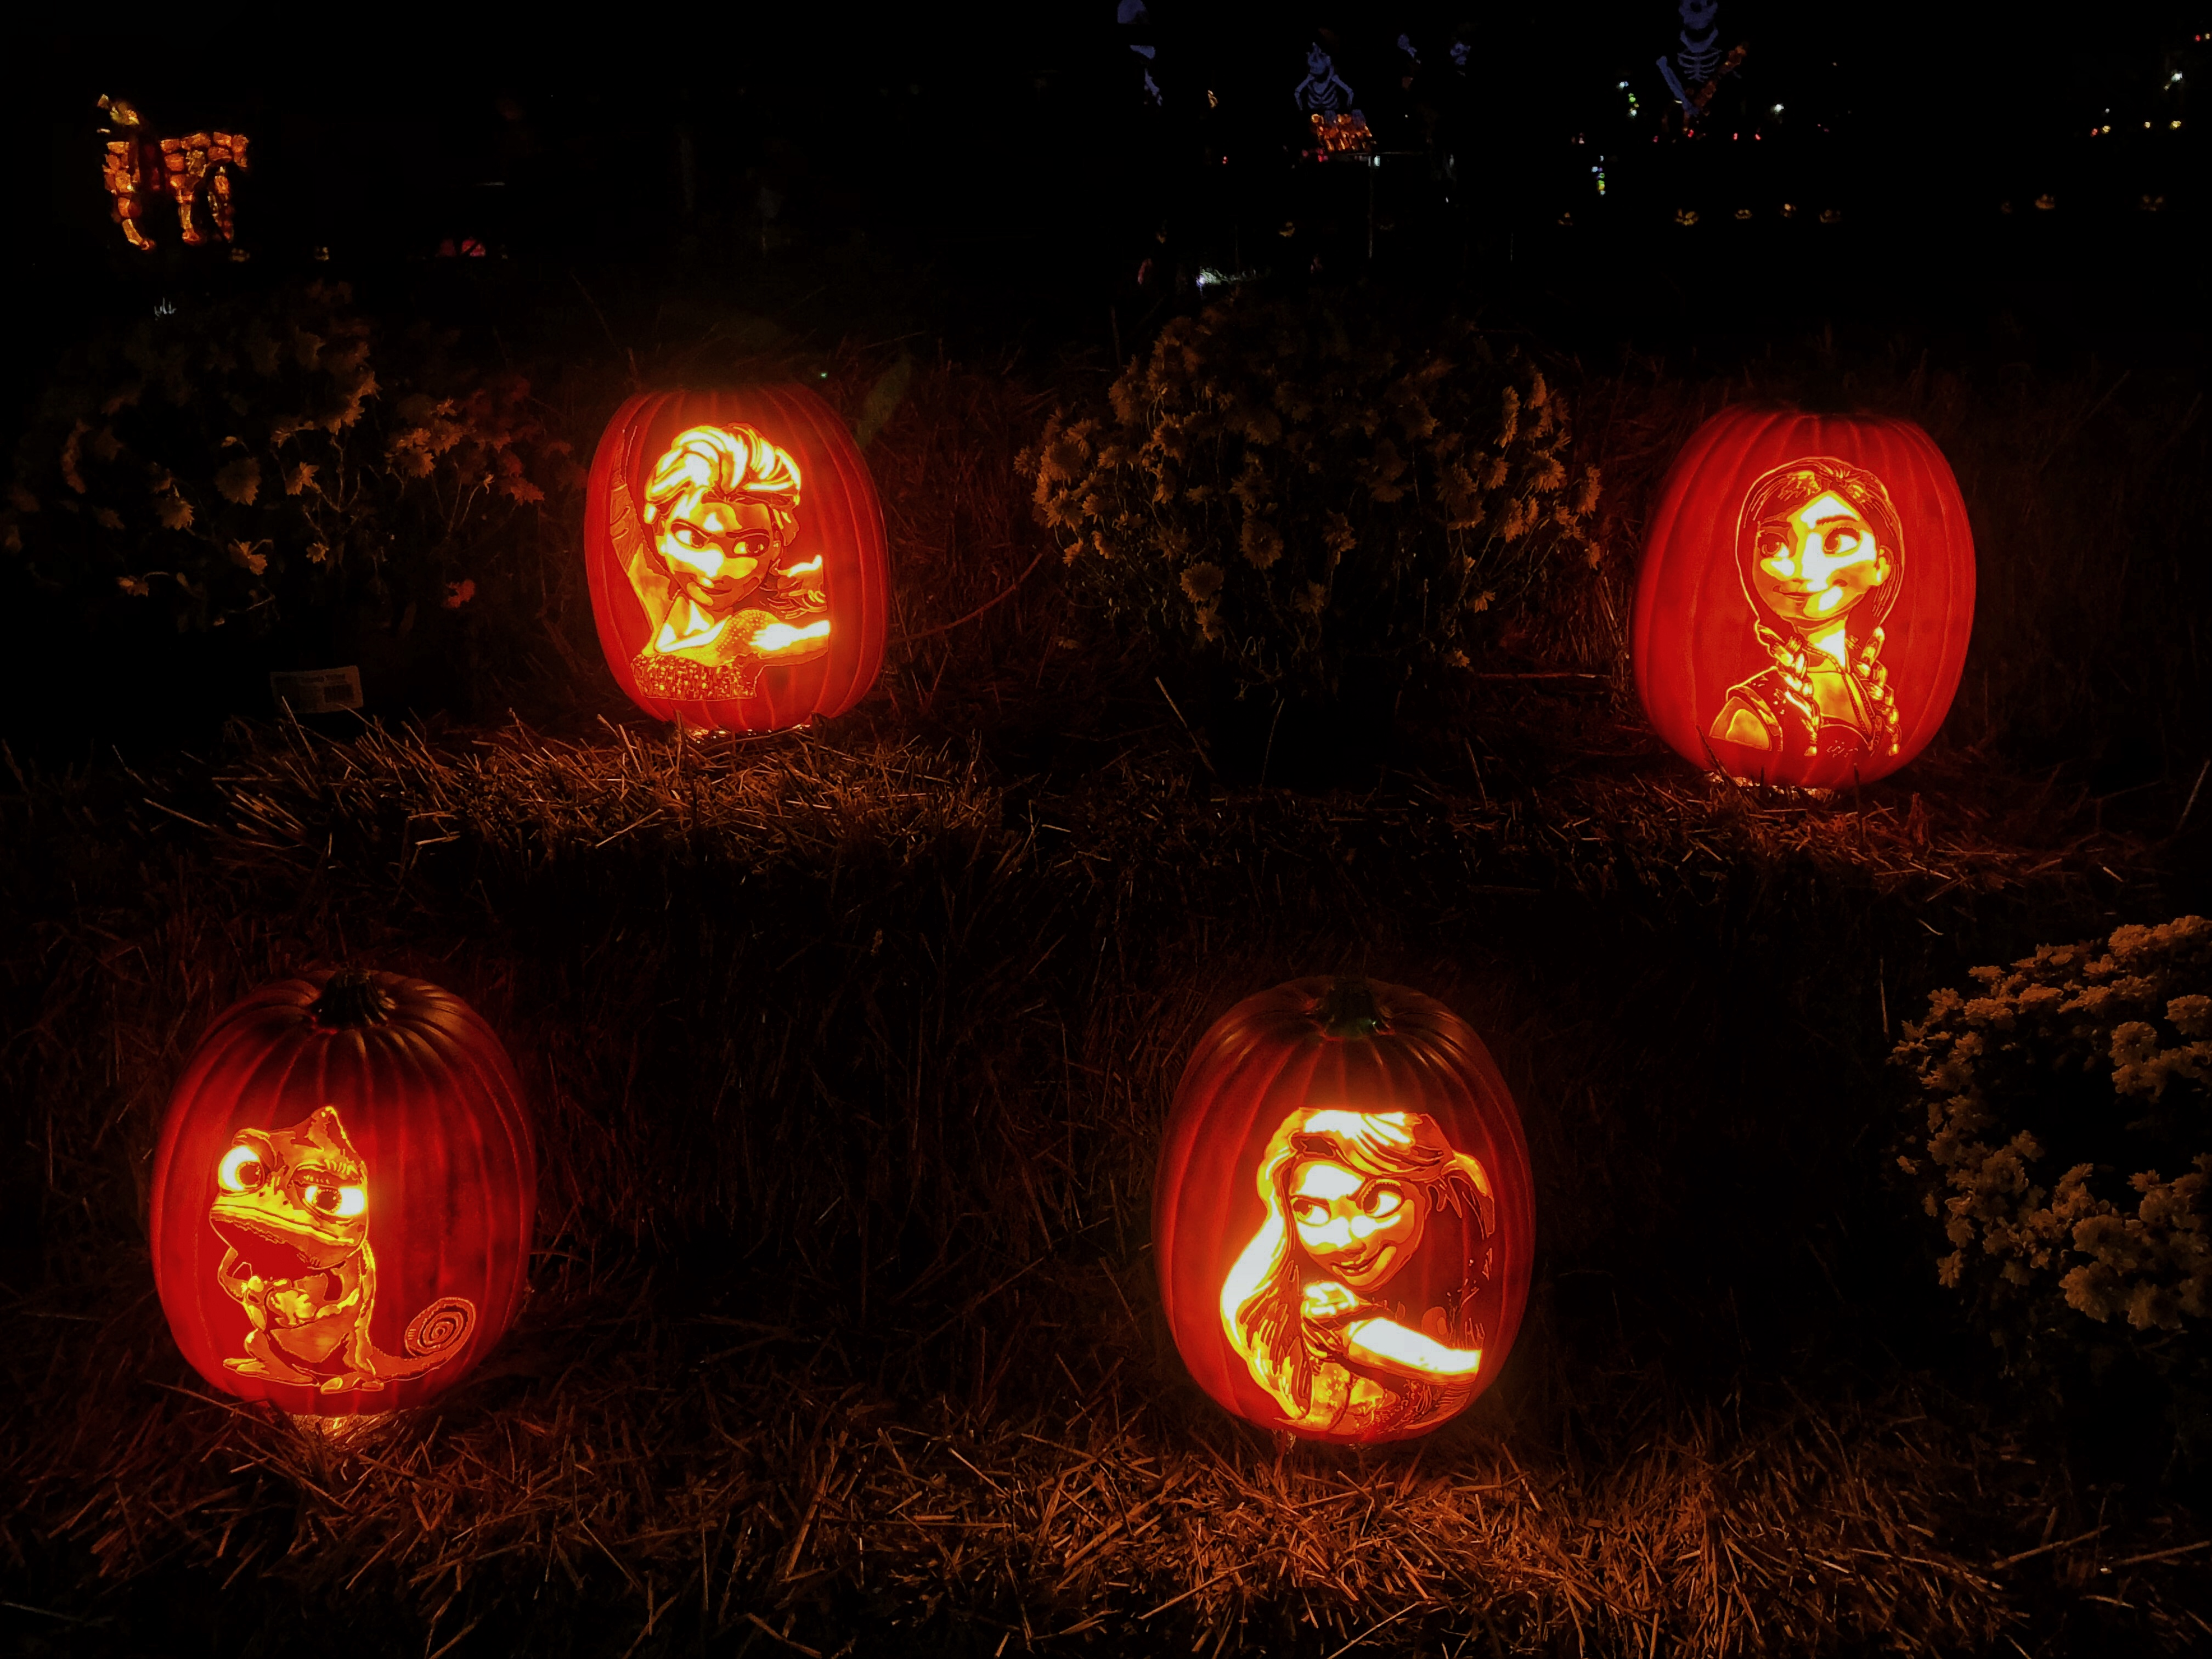 Frozen and Tangled Illuminated Pumpkins at The Glow